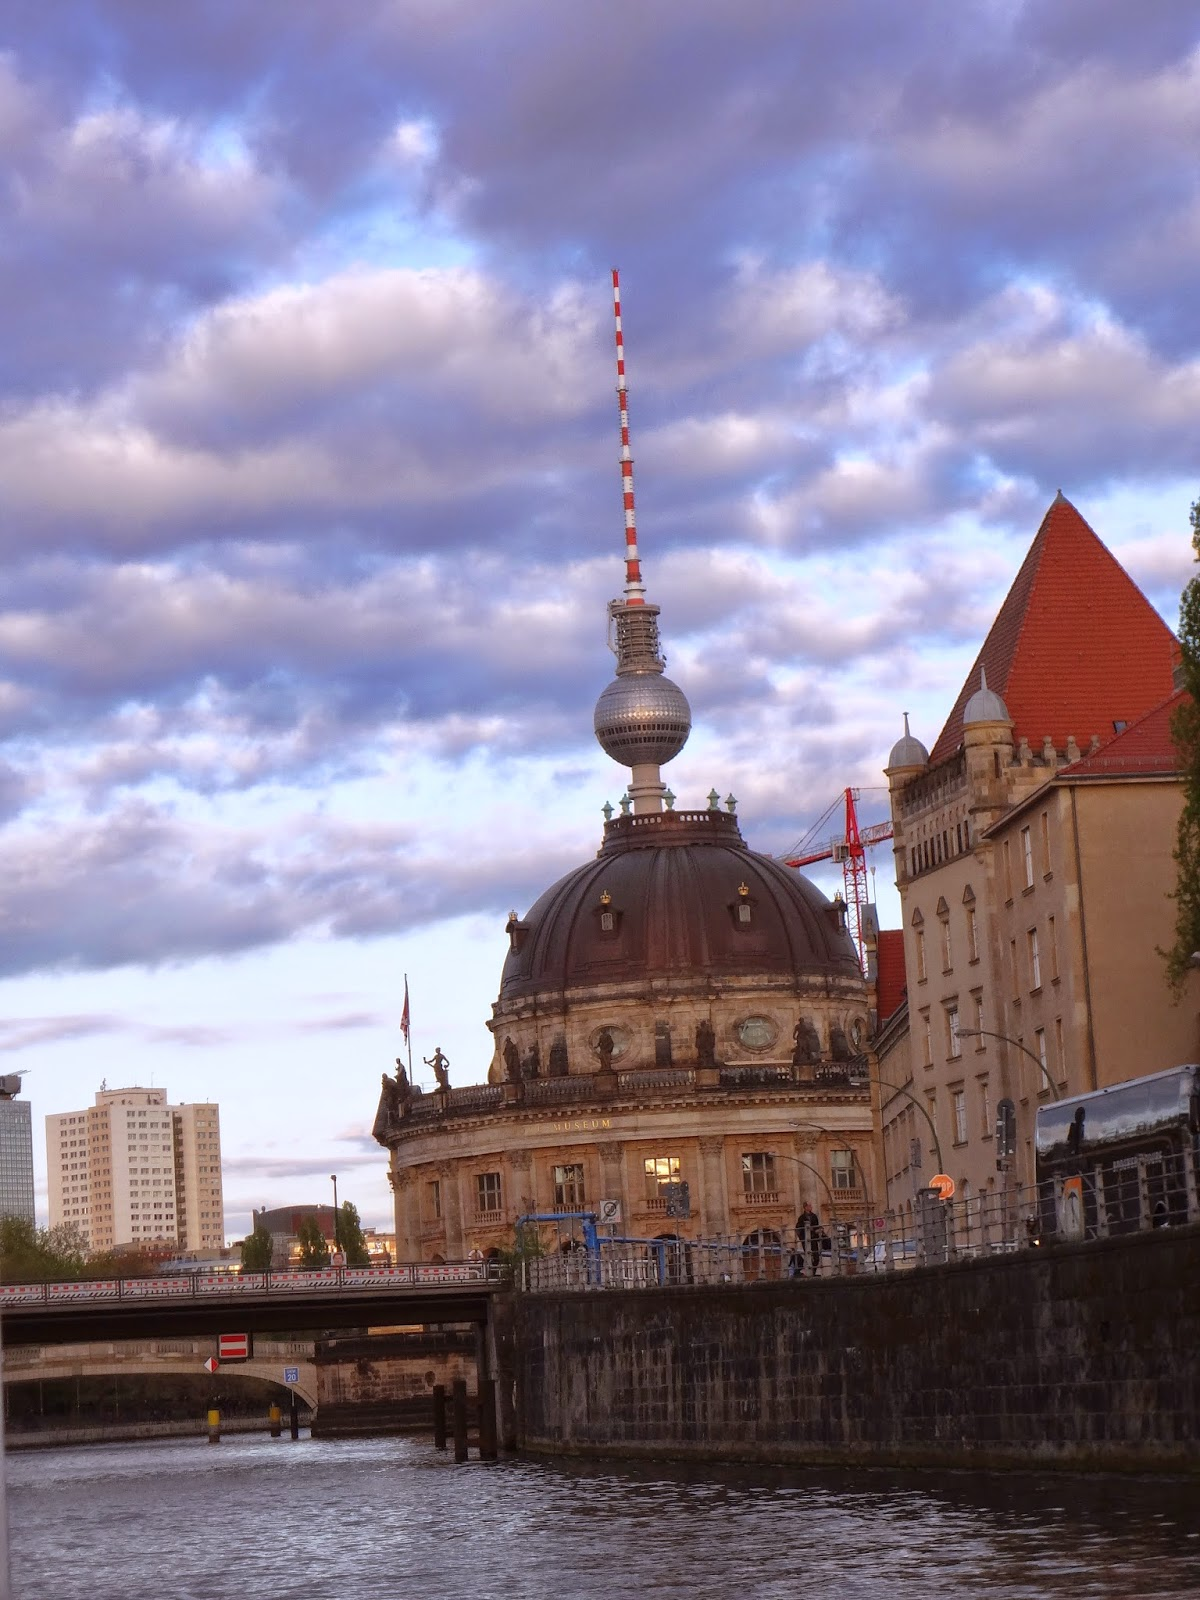 Berlin Express cruise